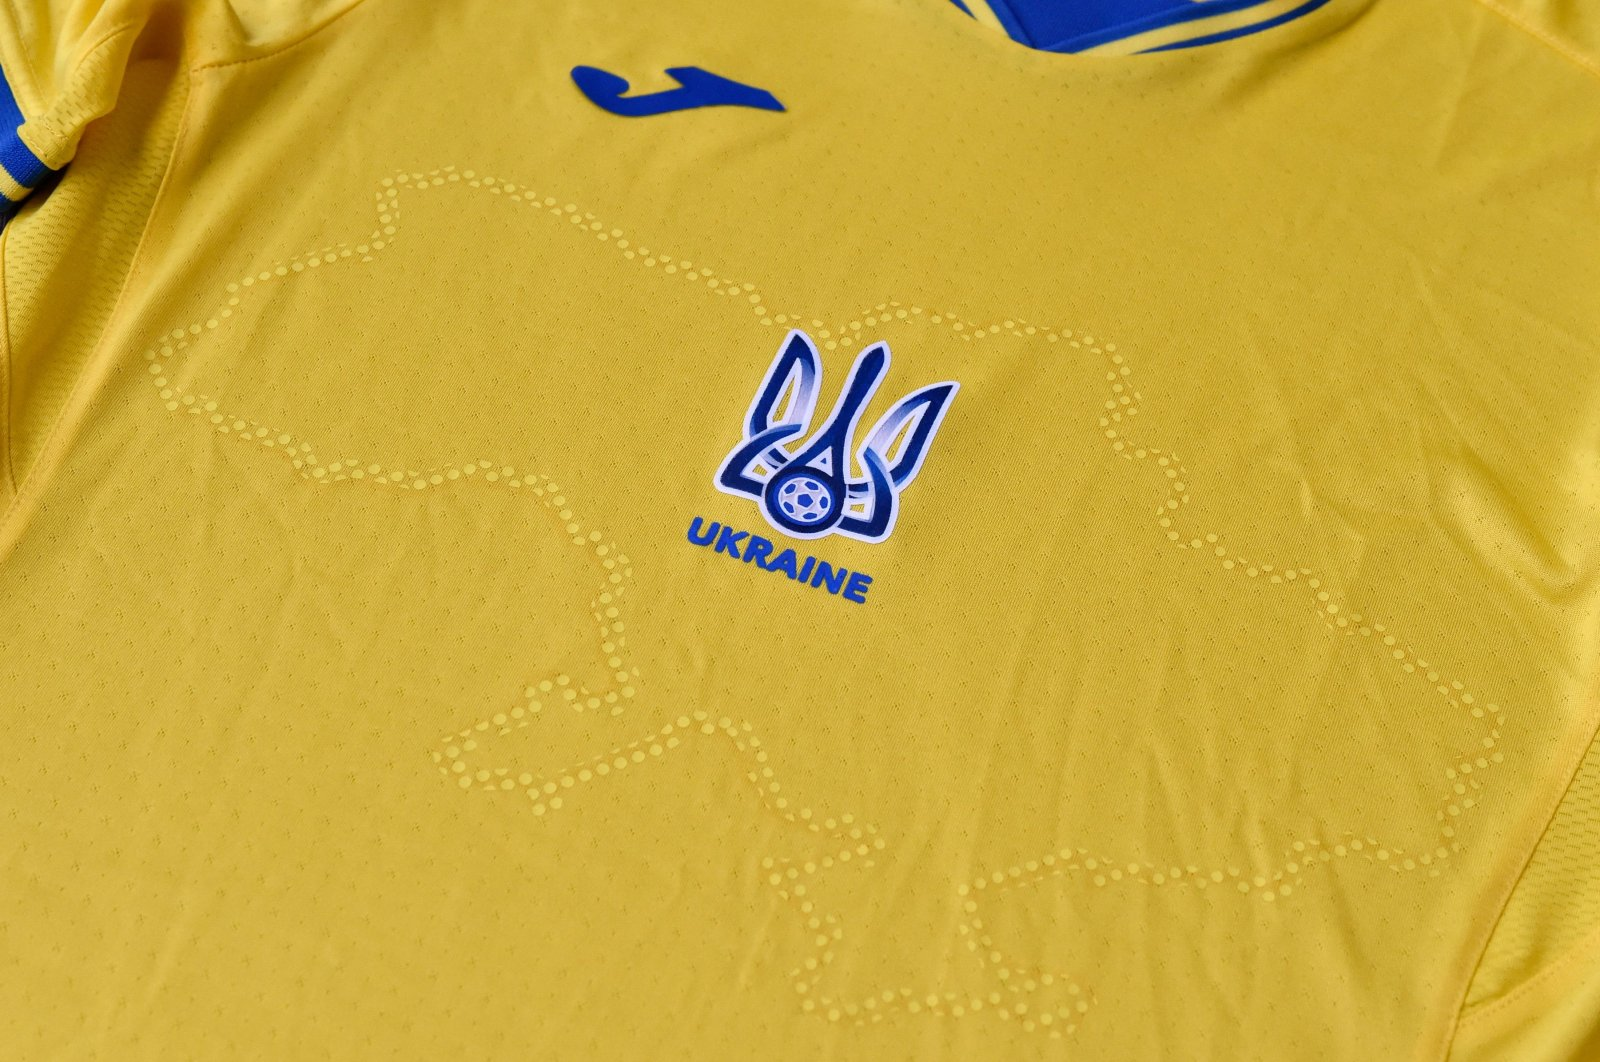 The Ukrainian national football team's Euro 2020 jersey, featuring a map of the country that includes the Russian-annexed Crimea and nationalist slogans, is seen in Kyiv, Ukraine, June 6, 2021.